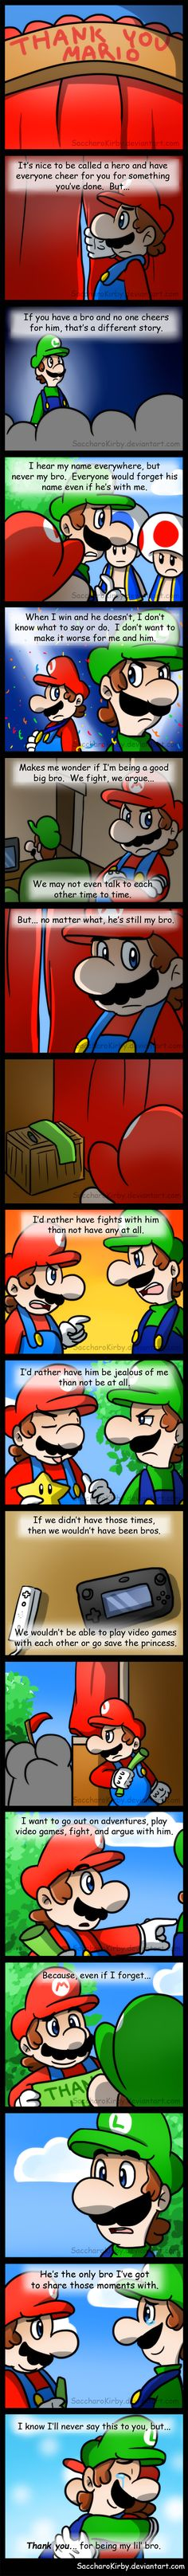 Geez, it's been a while since I've done a Mario comic haha~ So as you may have noticed, this isn't like my other comics (and definitely not as long lol! Seventeen panels are a joy to draw!). ...